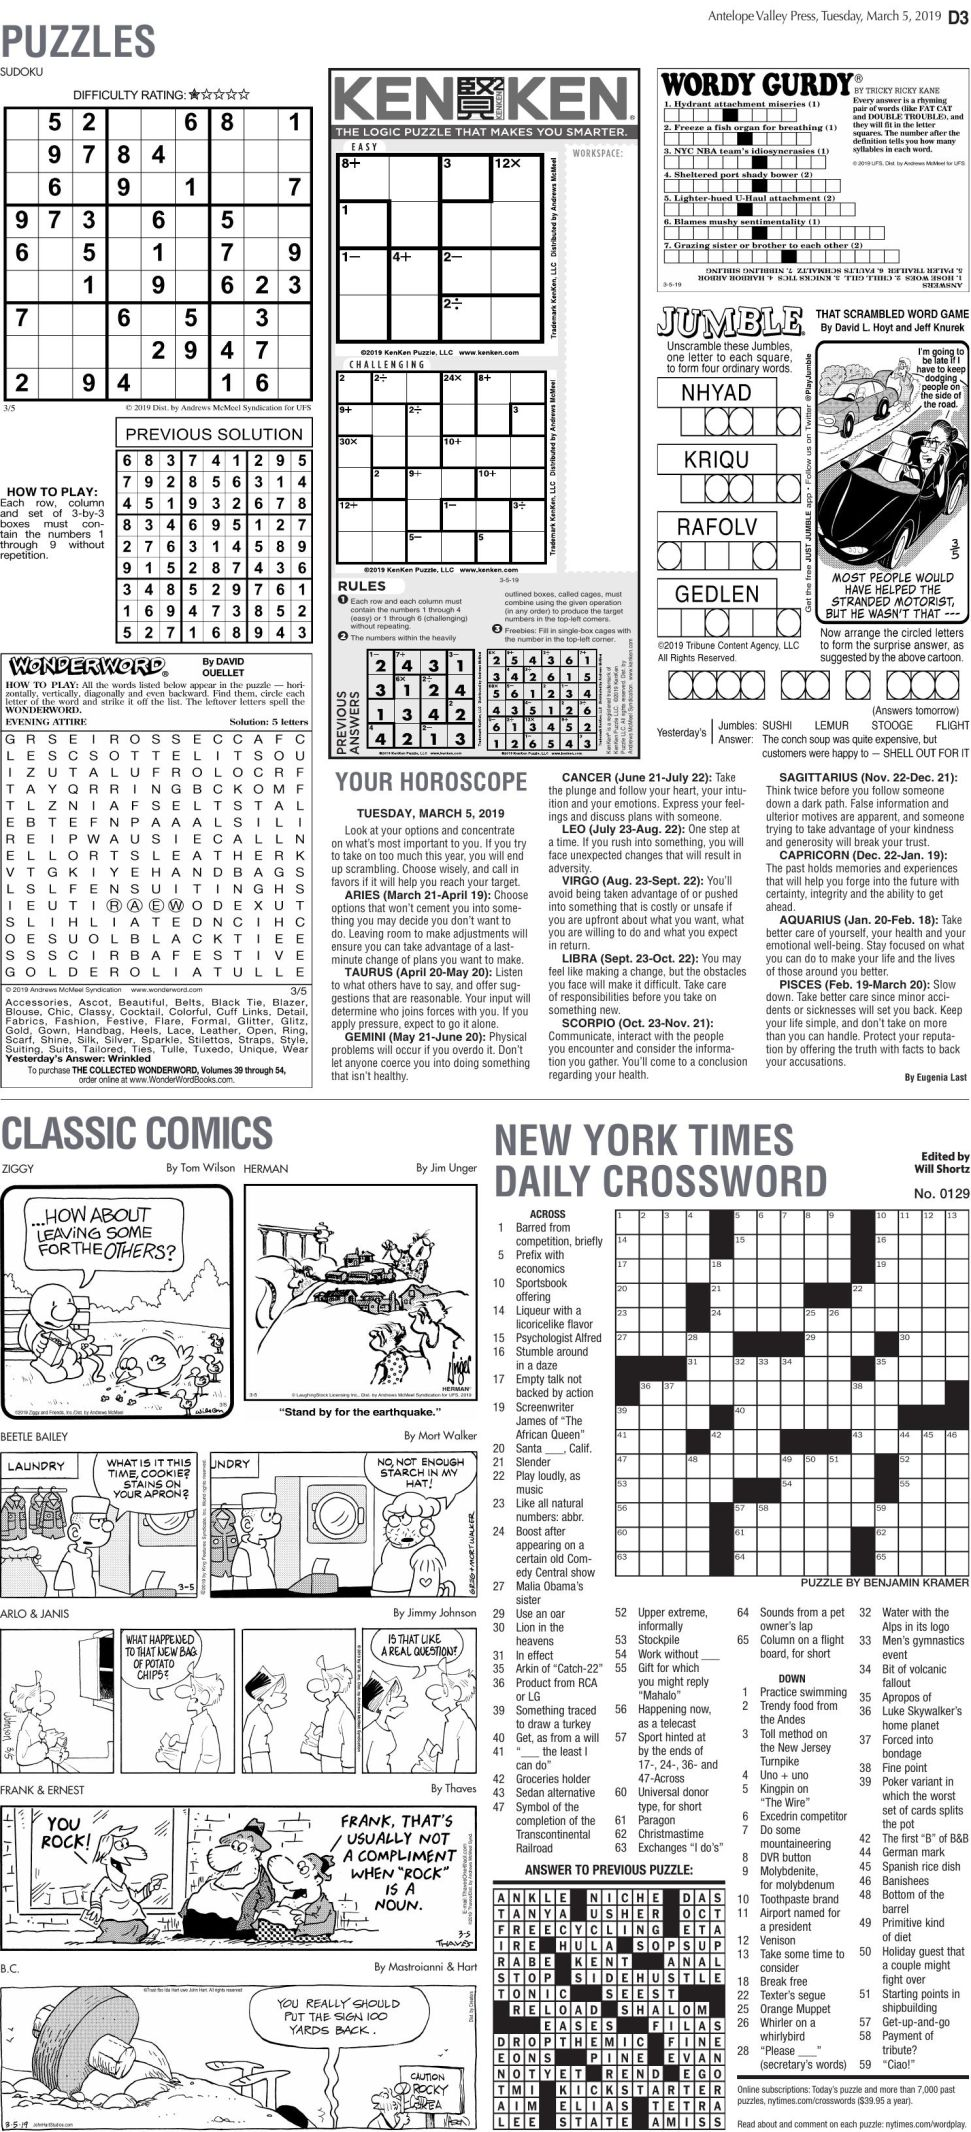 March 5, 2019 Puzzles